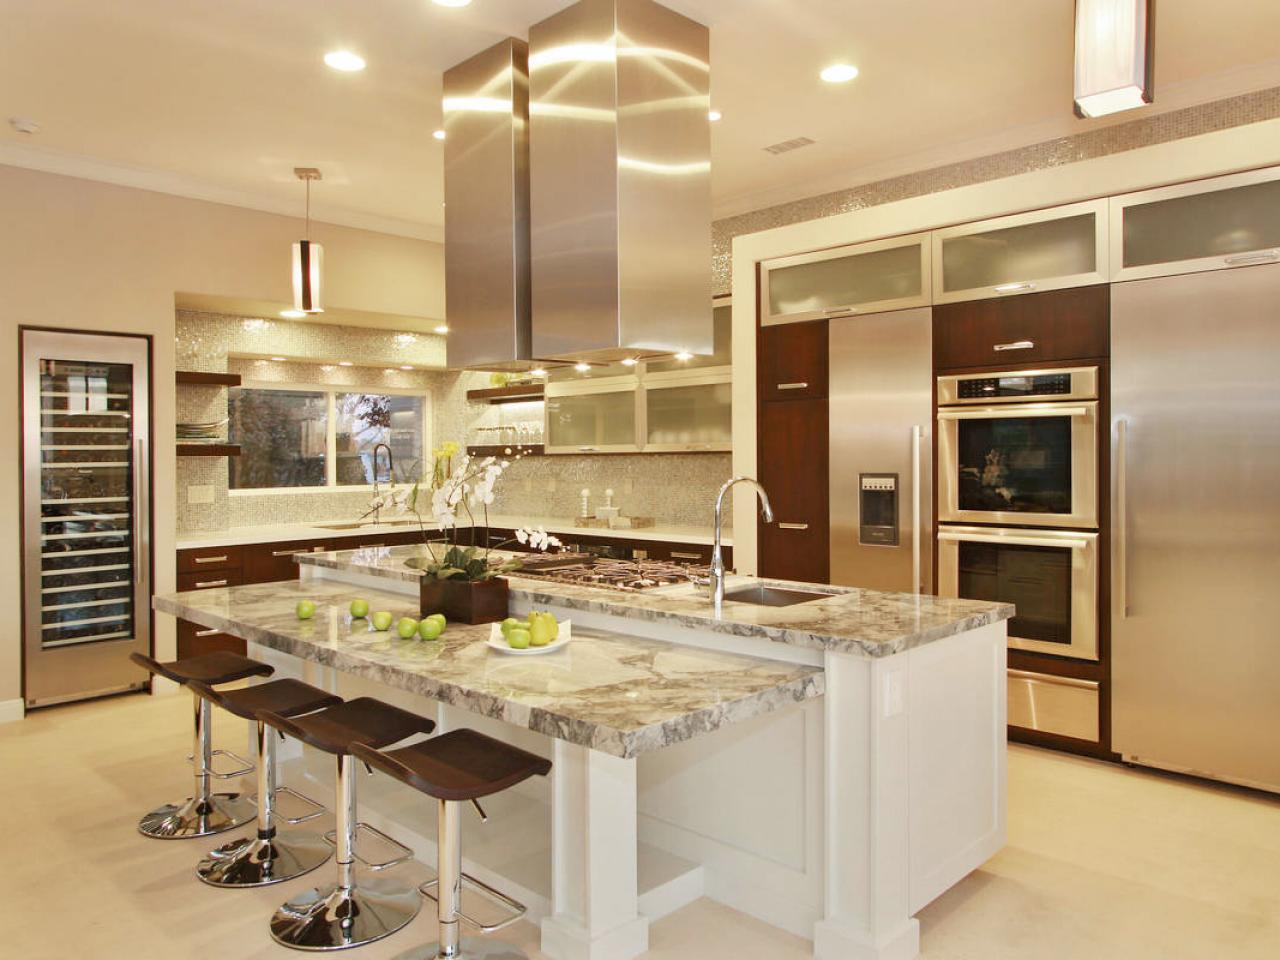 3 best kitchen layout ideas for house with small space Kitchen island design ideas